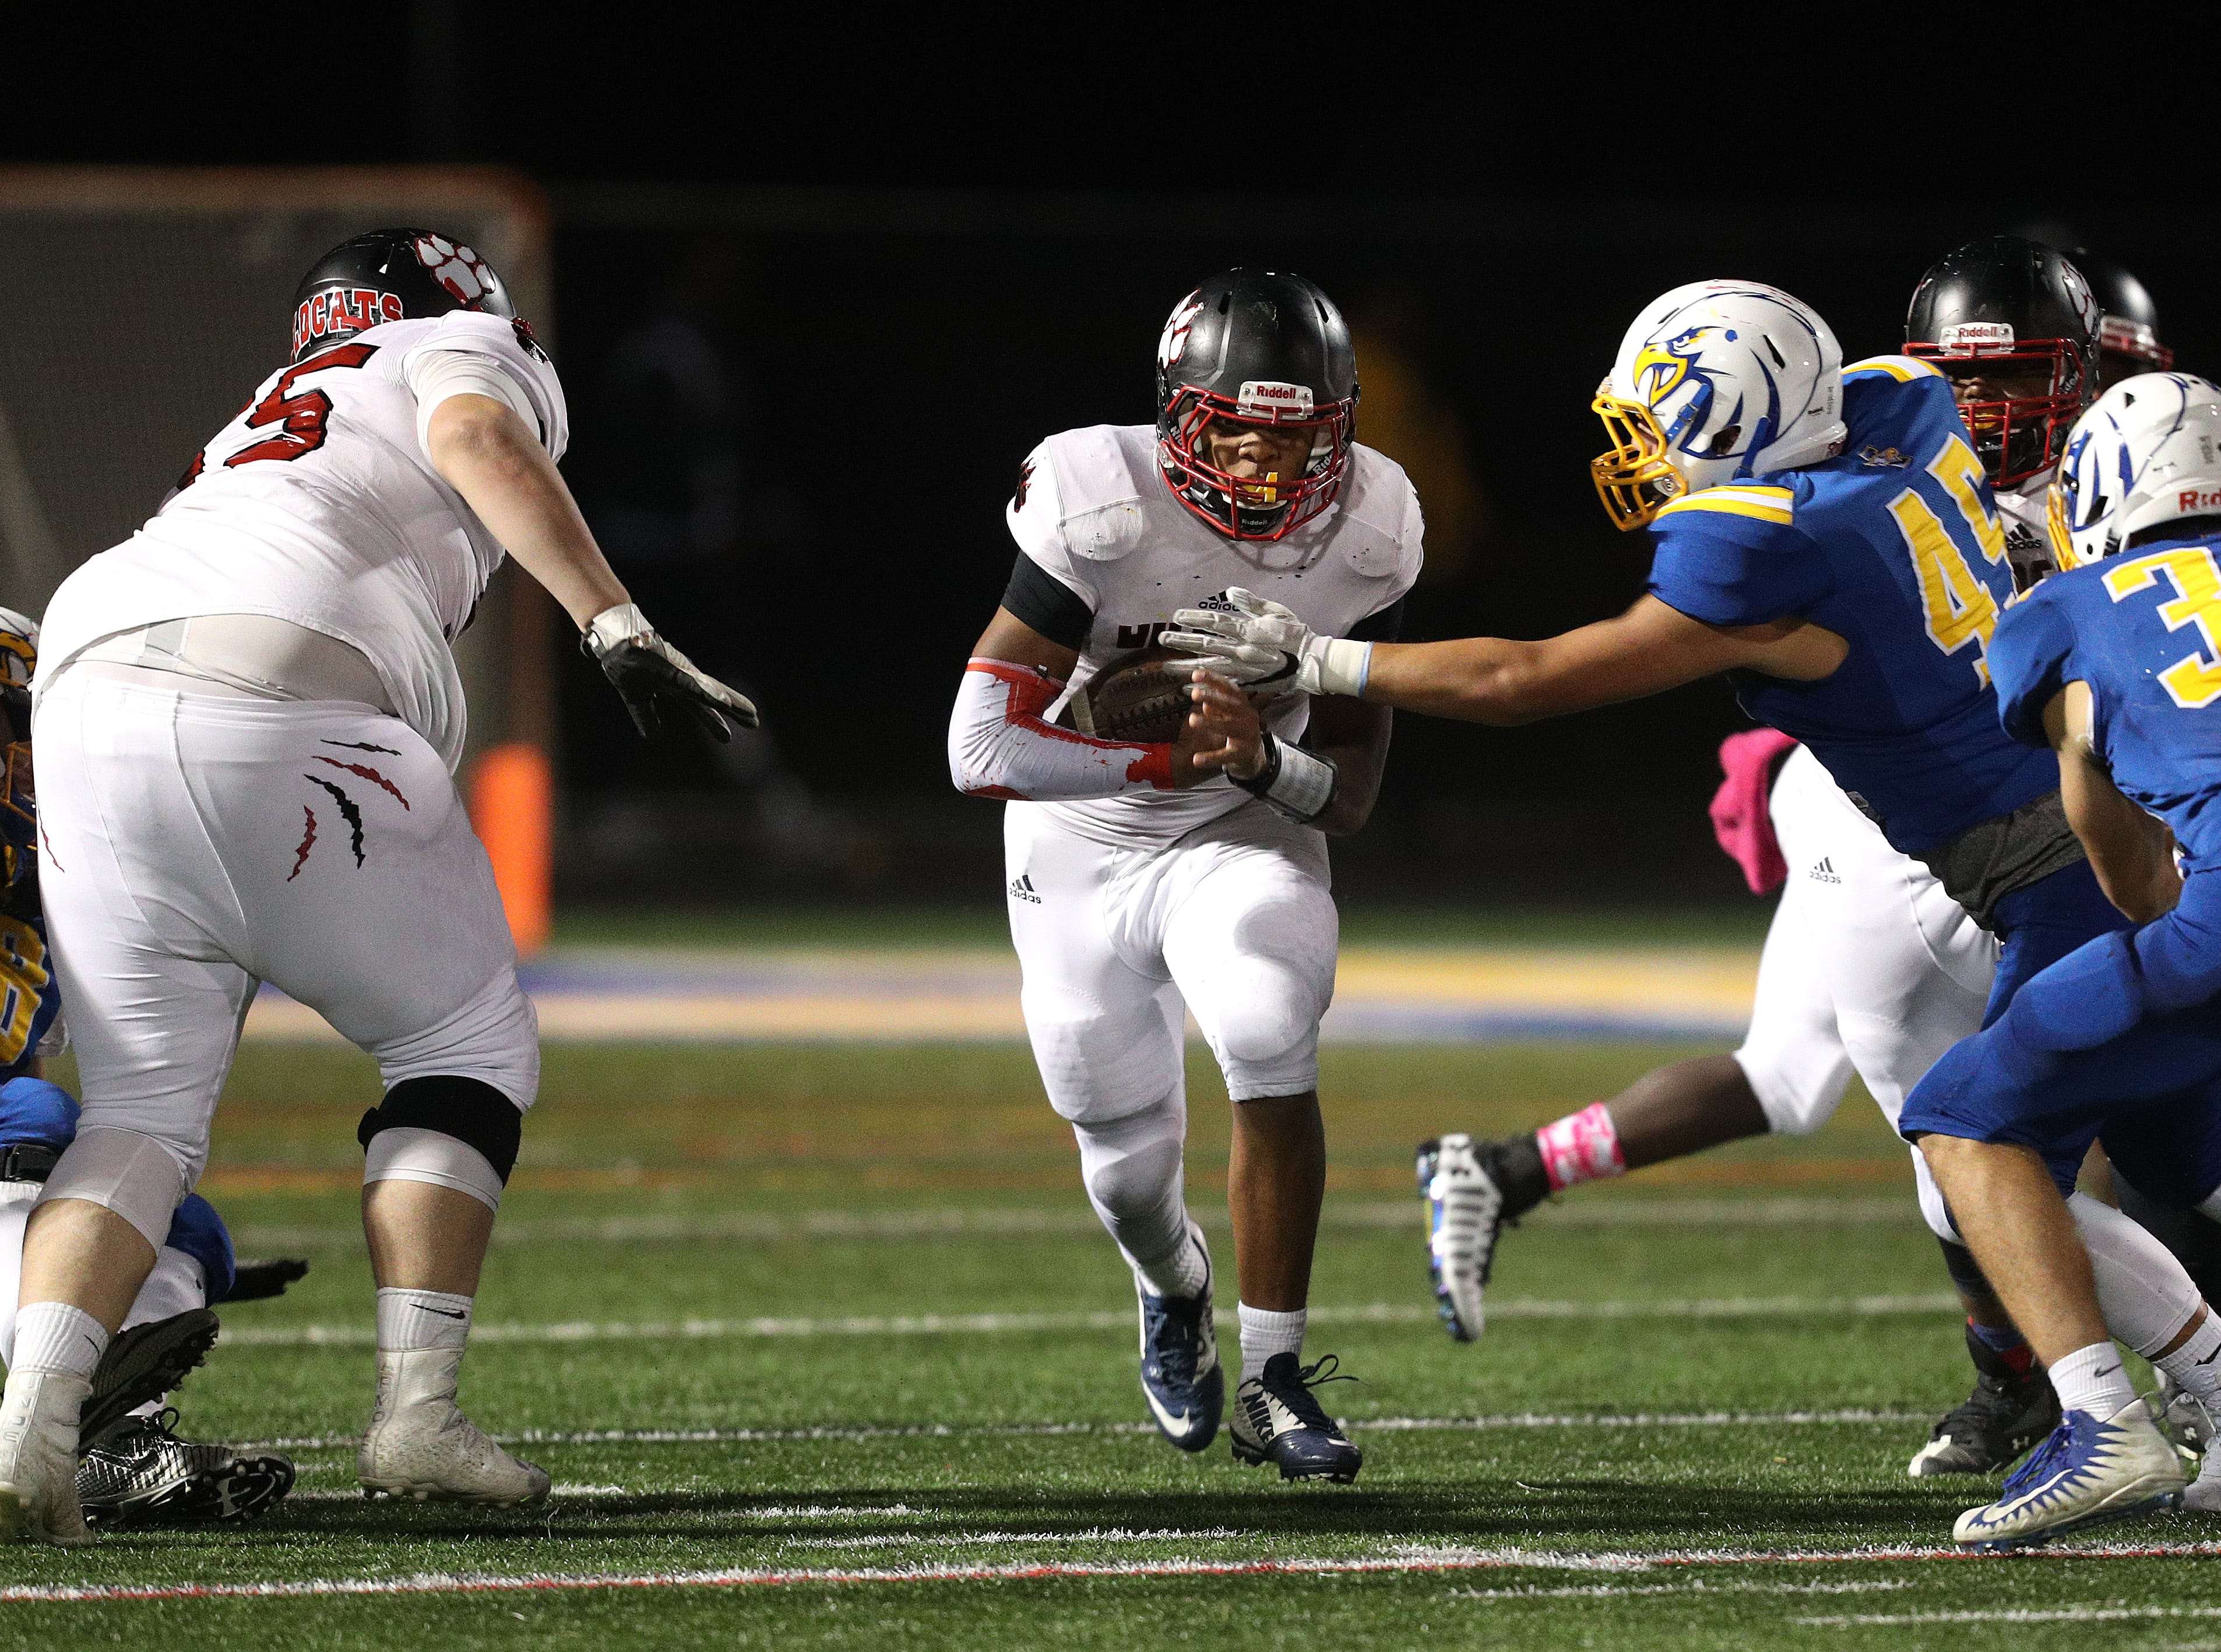 Wilson running back Desi Floyd Jr. finds a hole at the line of scrimmage against Irondequoit.